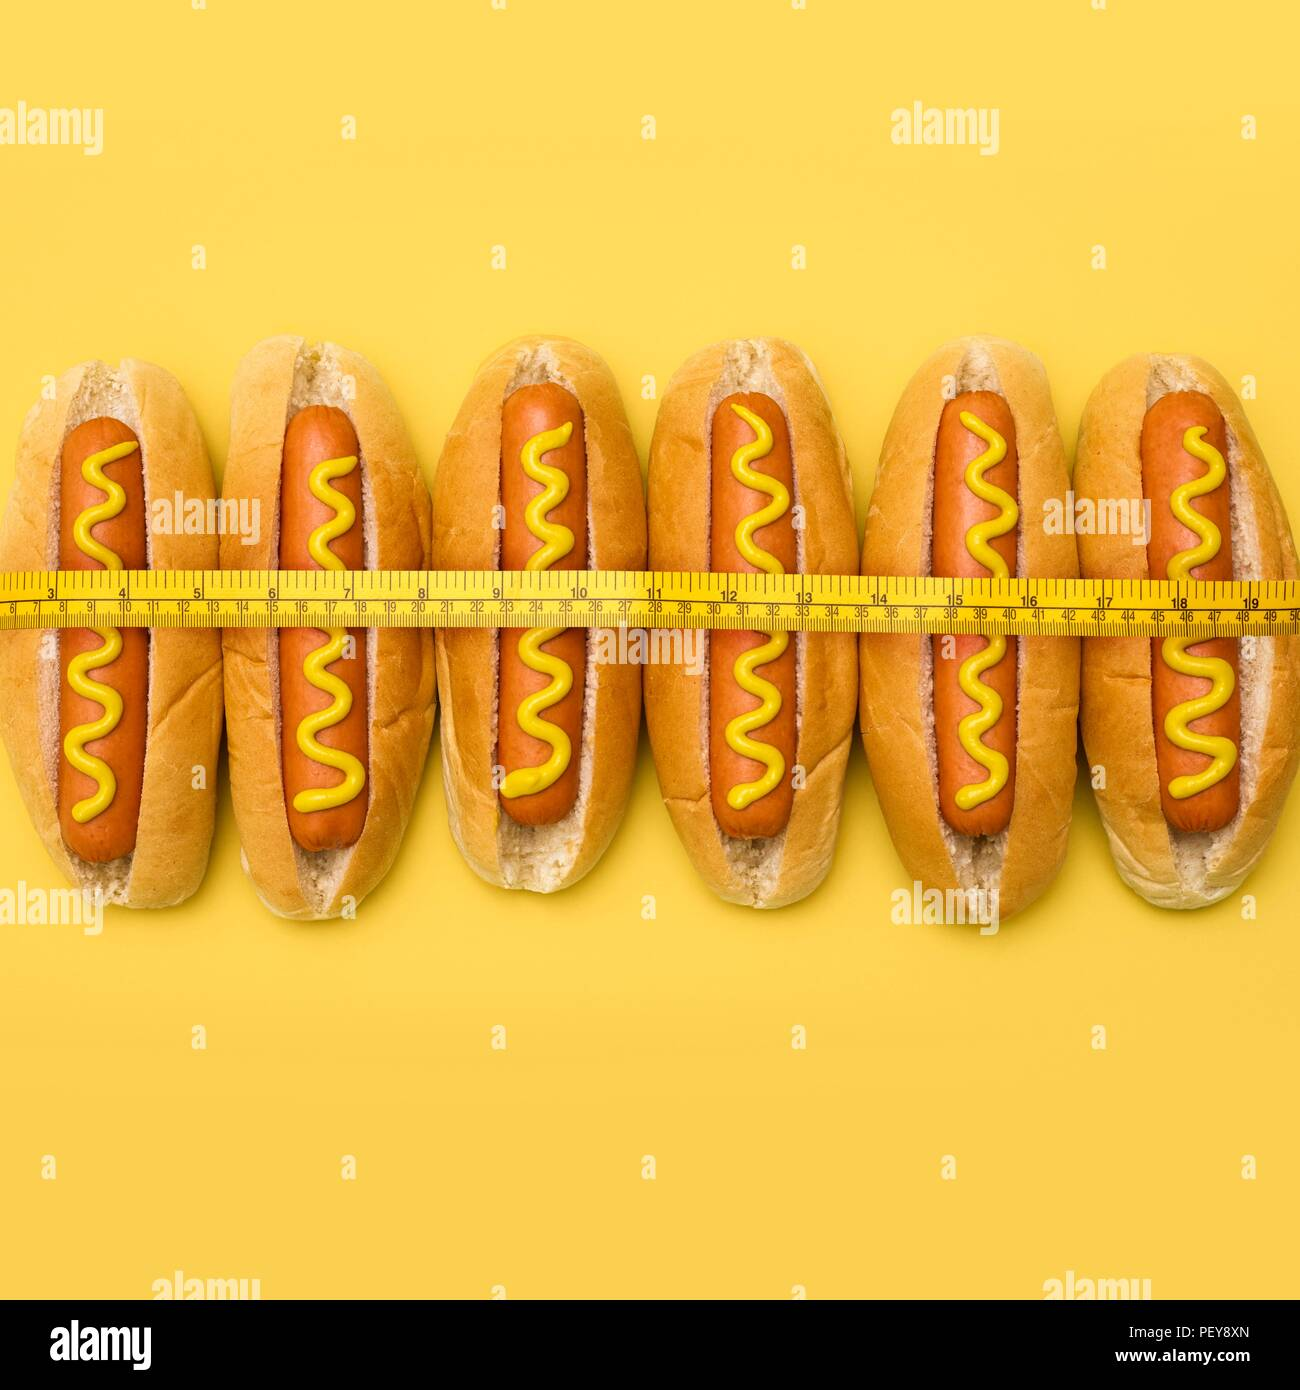 Dieting, conceptual image. Measuring tape around hot dogs. - Stock Image